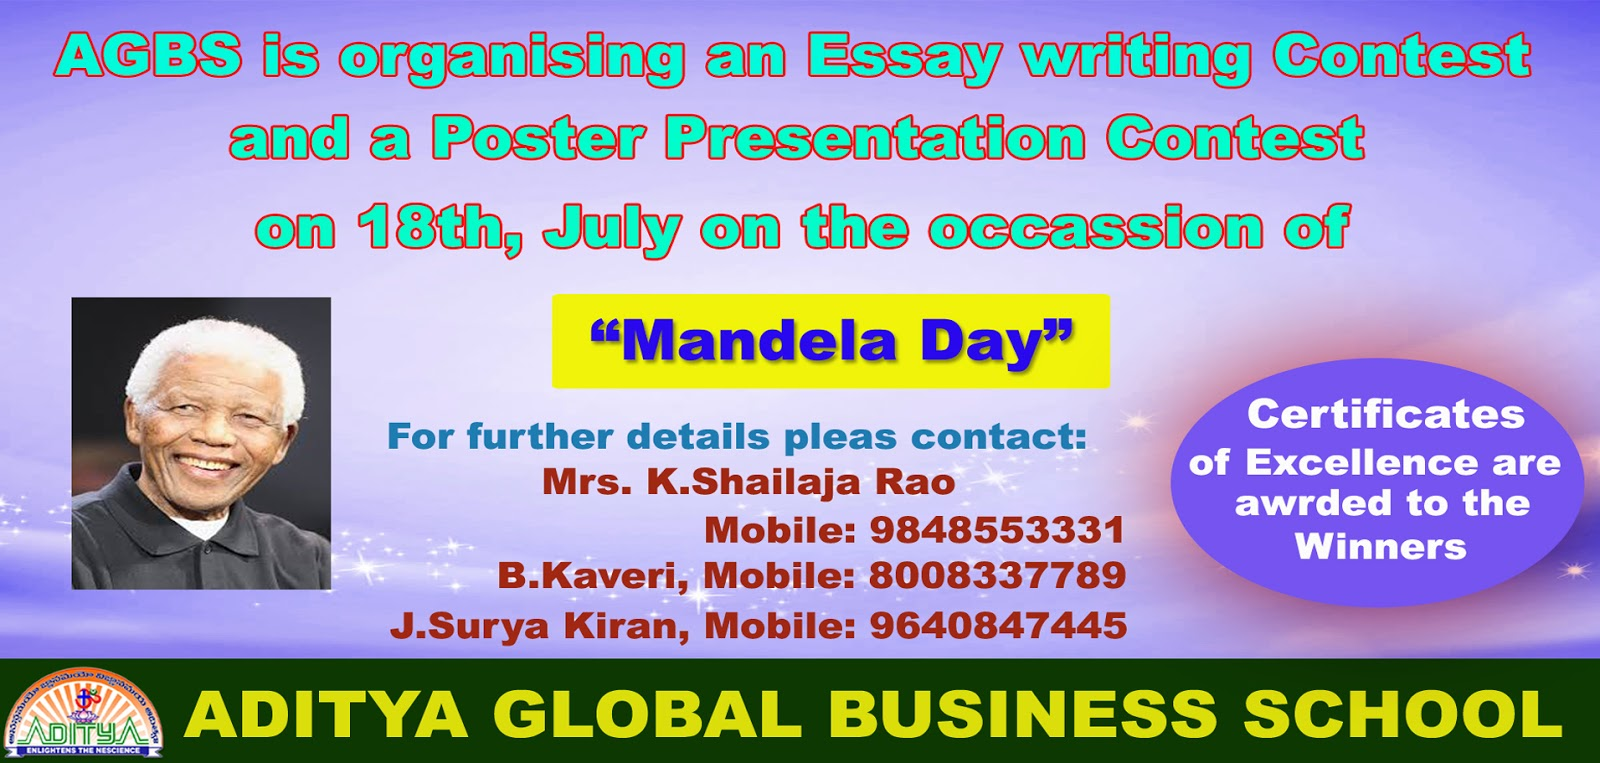 write an essay about nelson mandela International nelson mandela day essay, short speech, paragraph, date, ideas, song, south africa, democracy, 67 minutes all in one article.